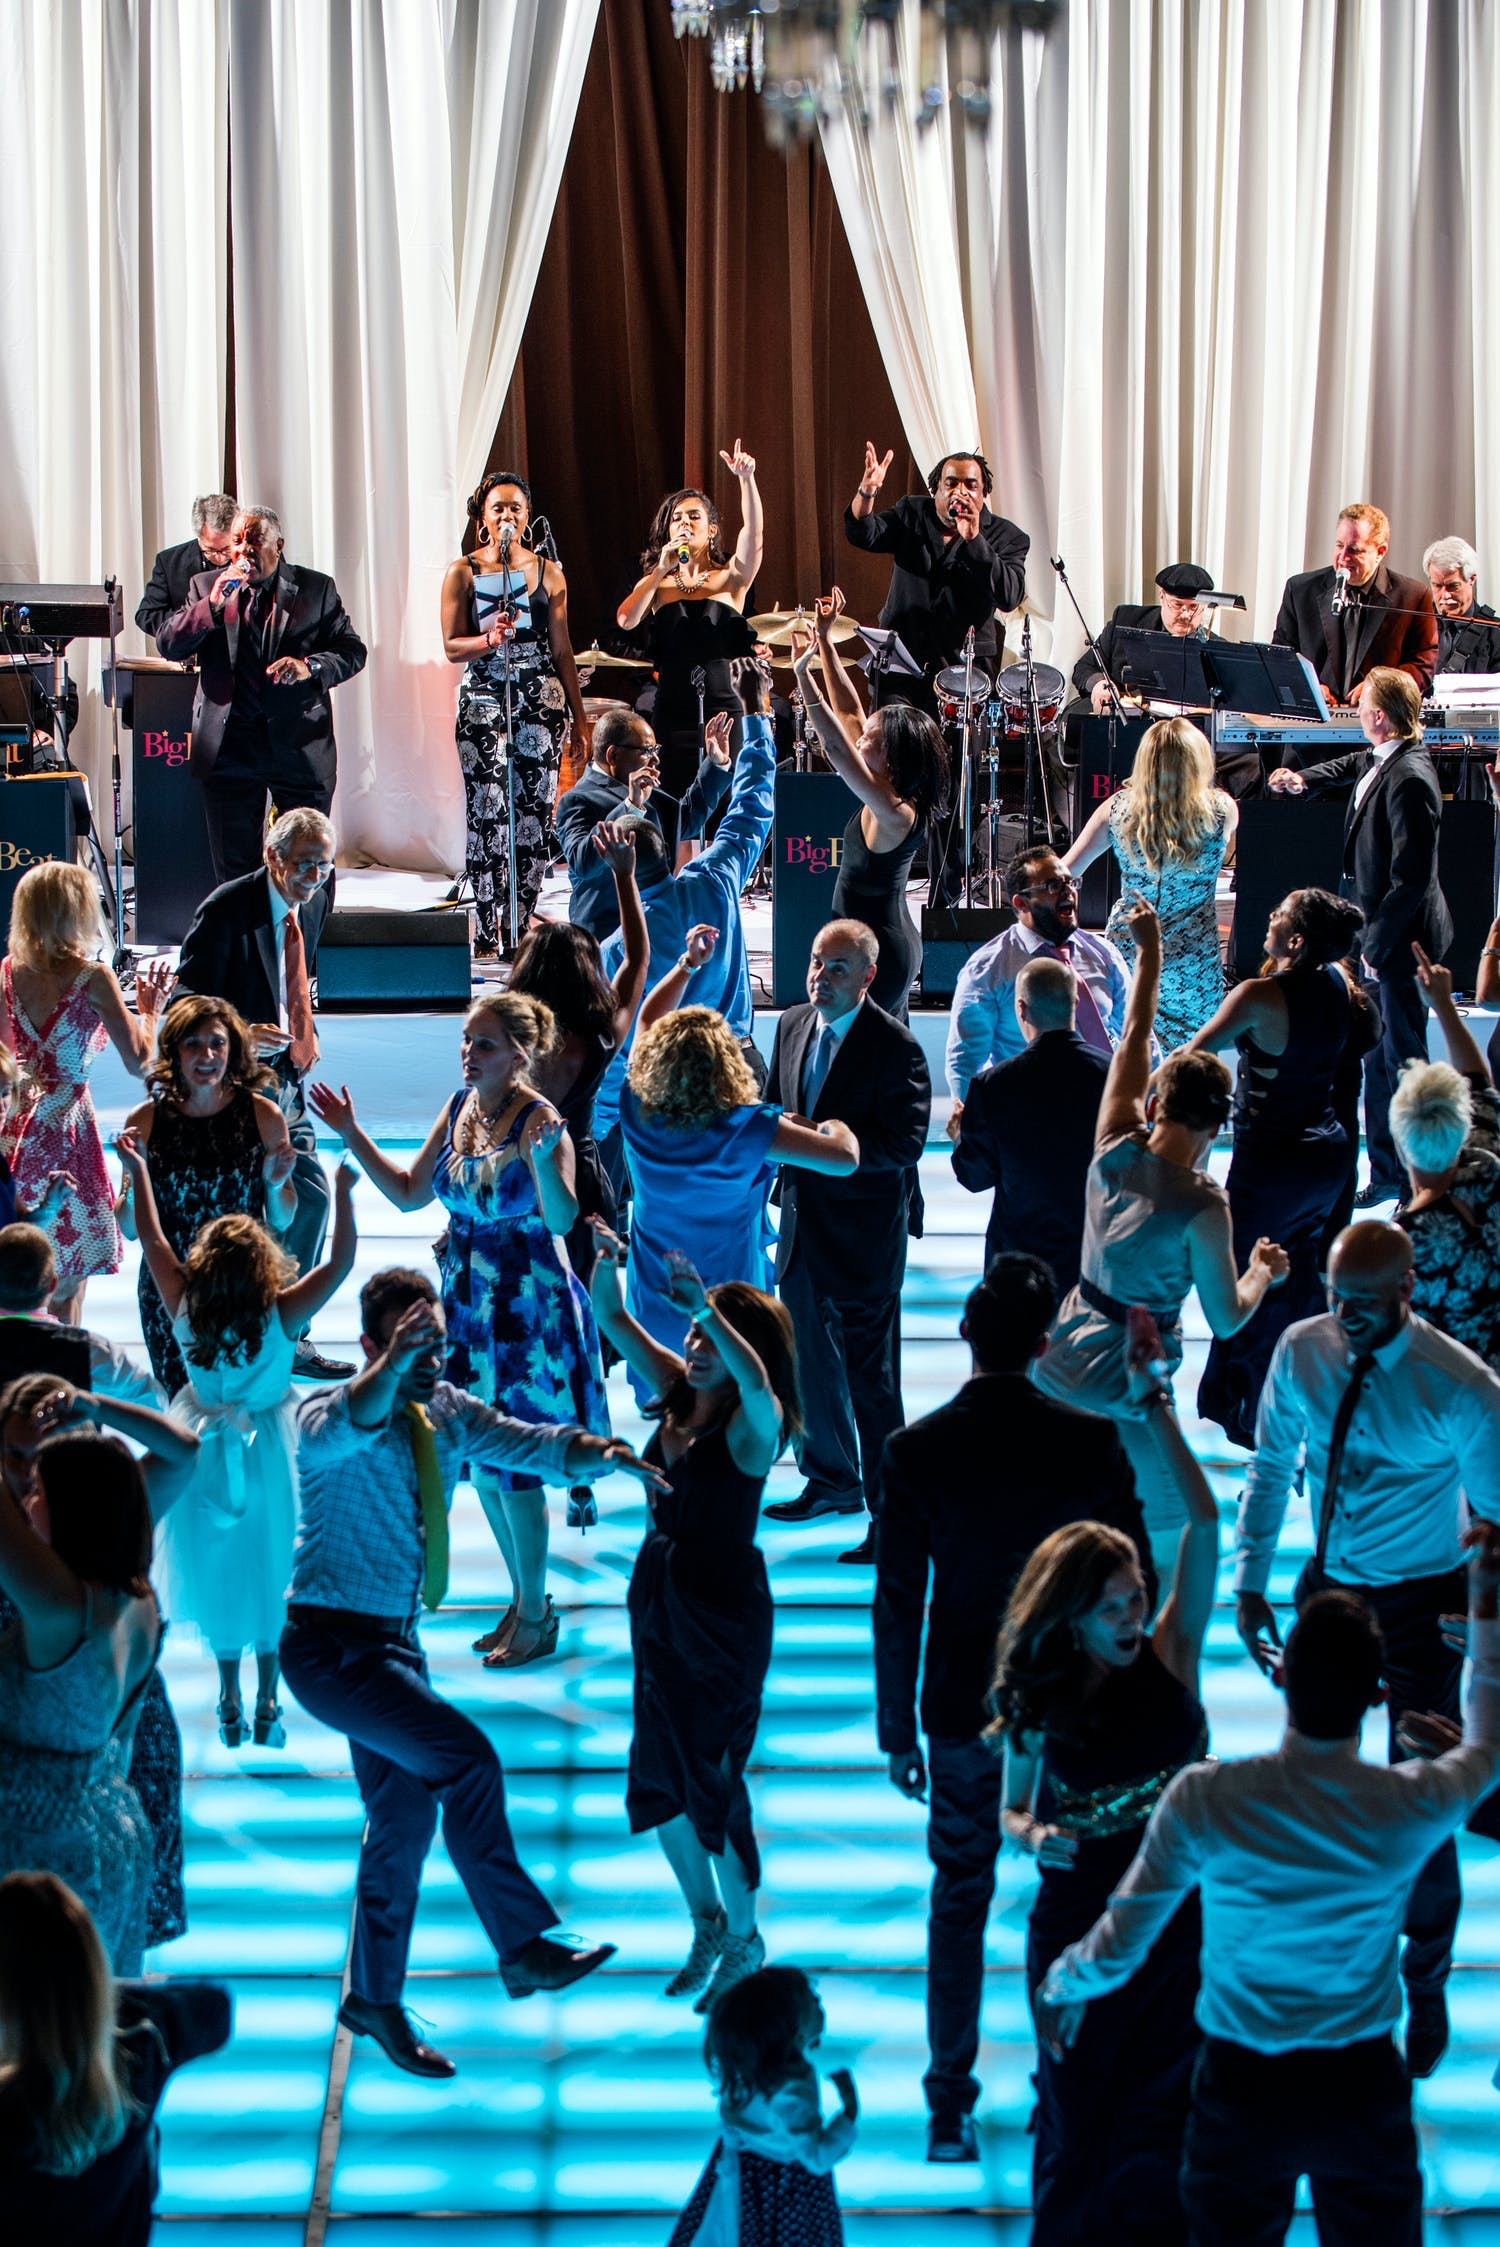 Guests dance on LED blue dance floor at wedding with performance by band Cagen Music LLC of Chicago, IL   PartySlate